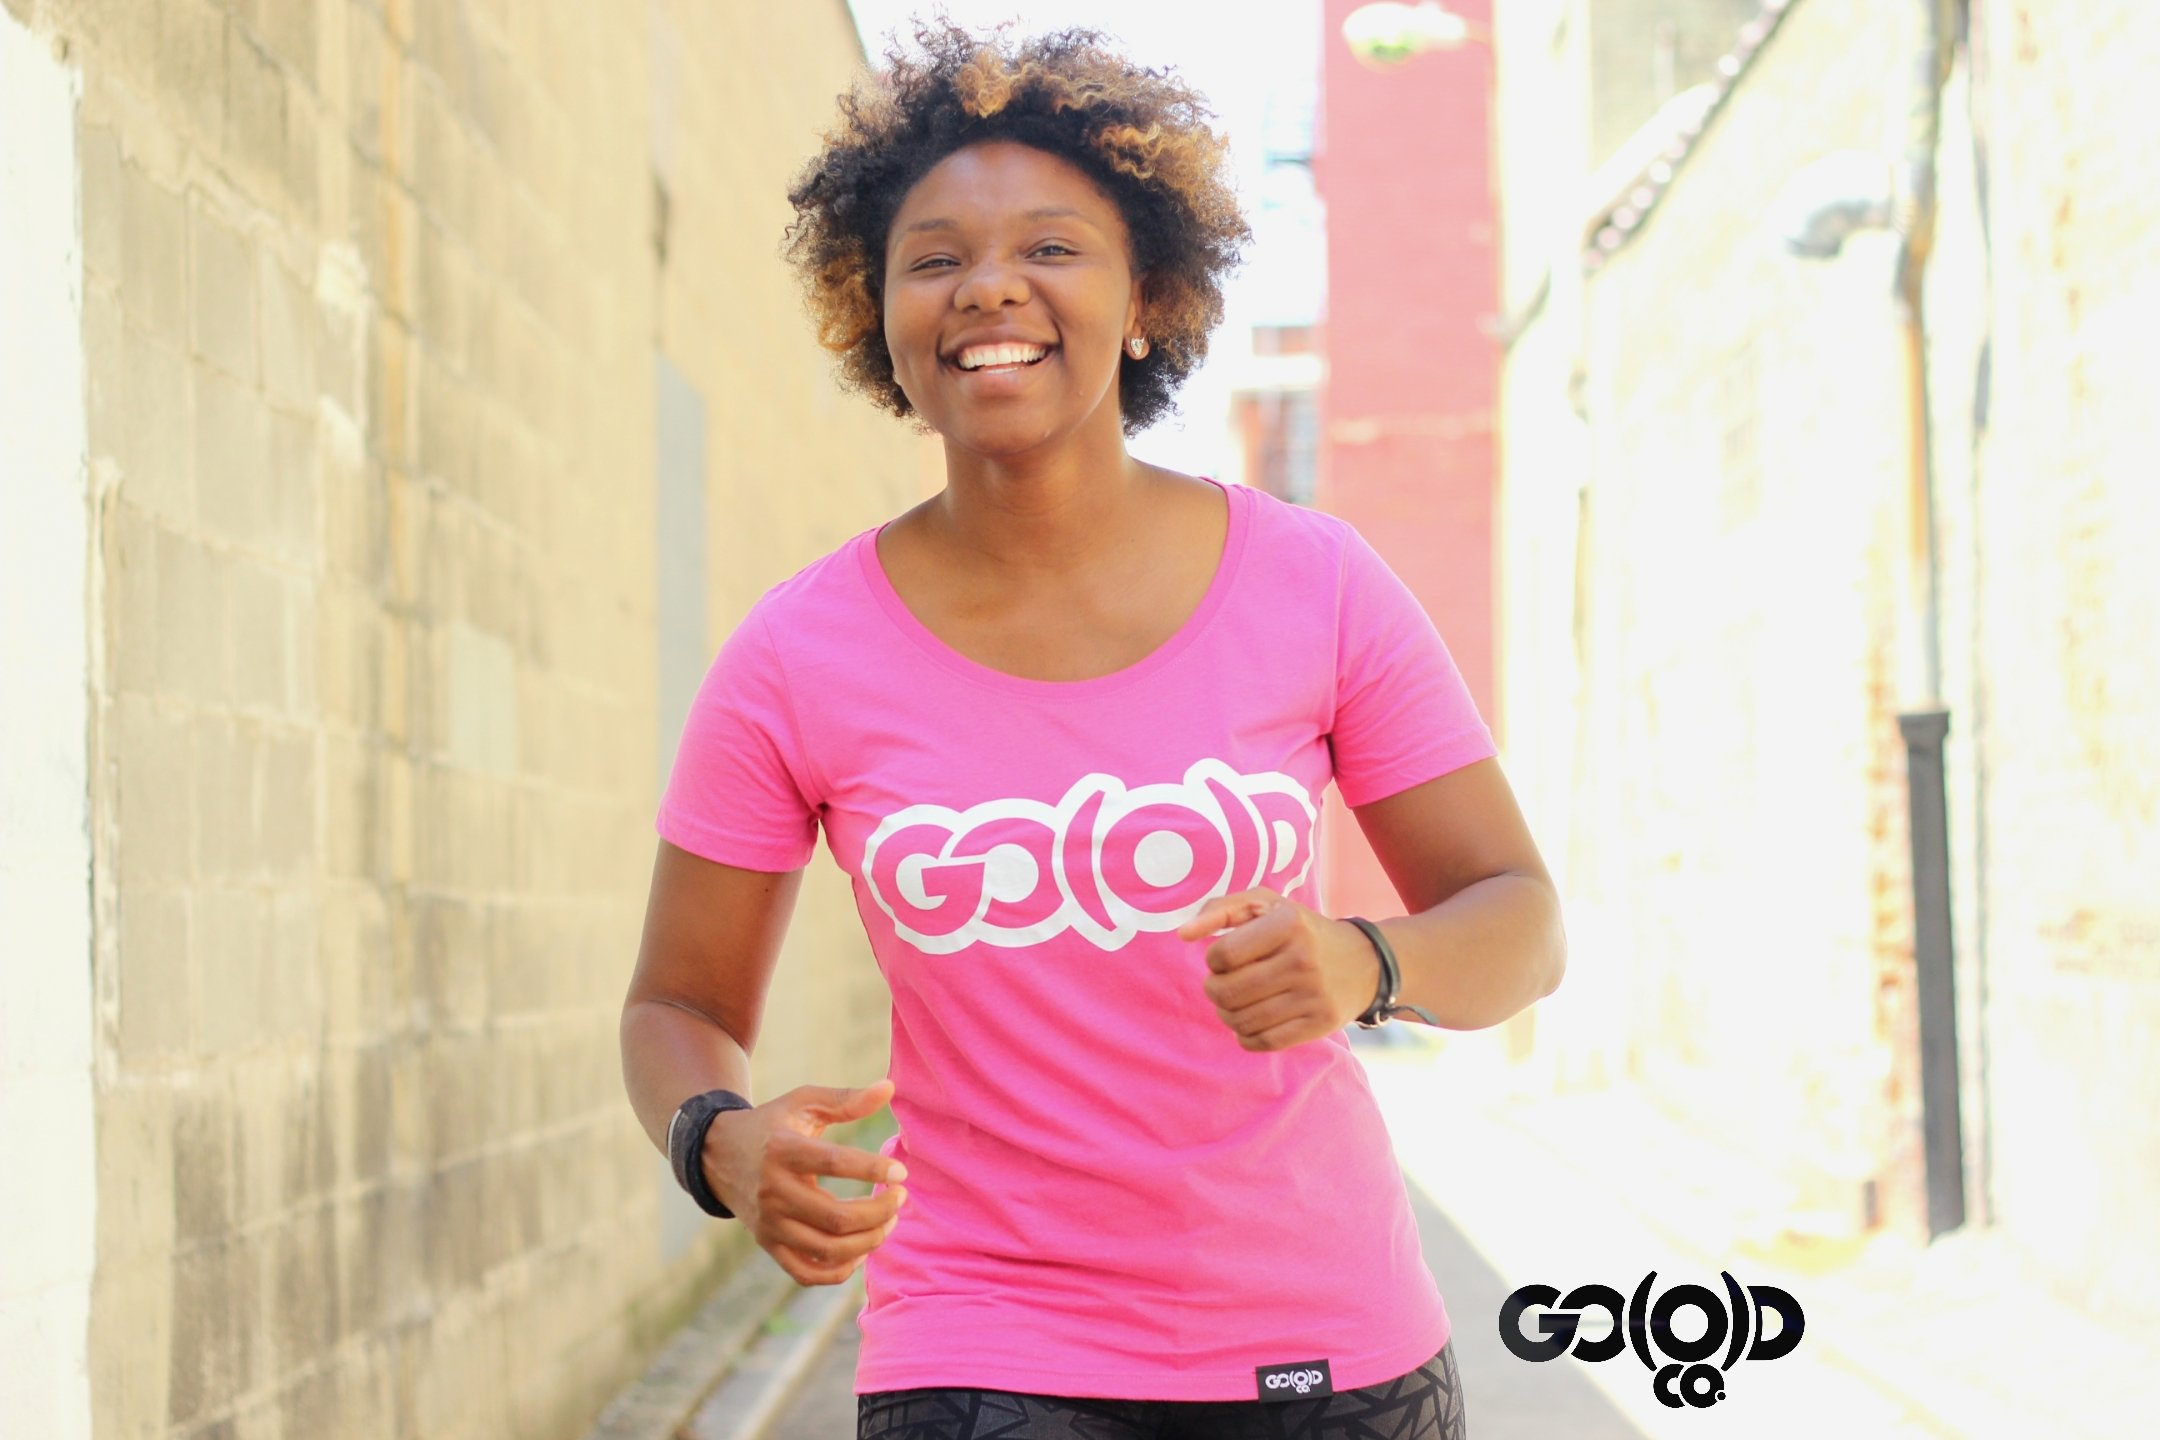 GO(O)D scoop neck tee-pink/wht 00126